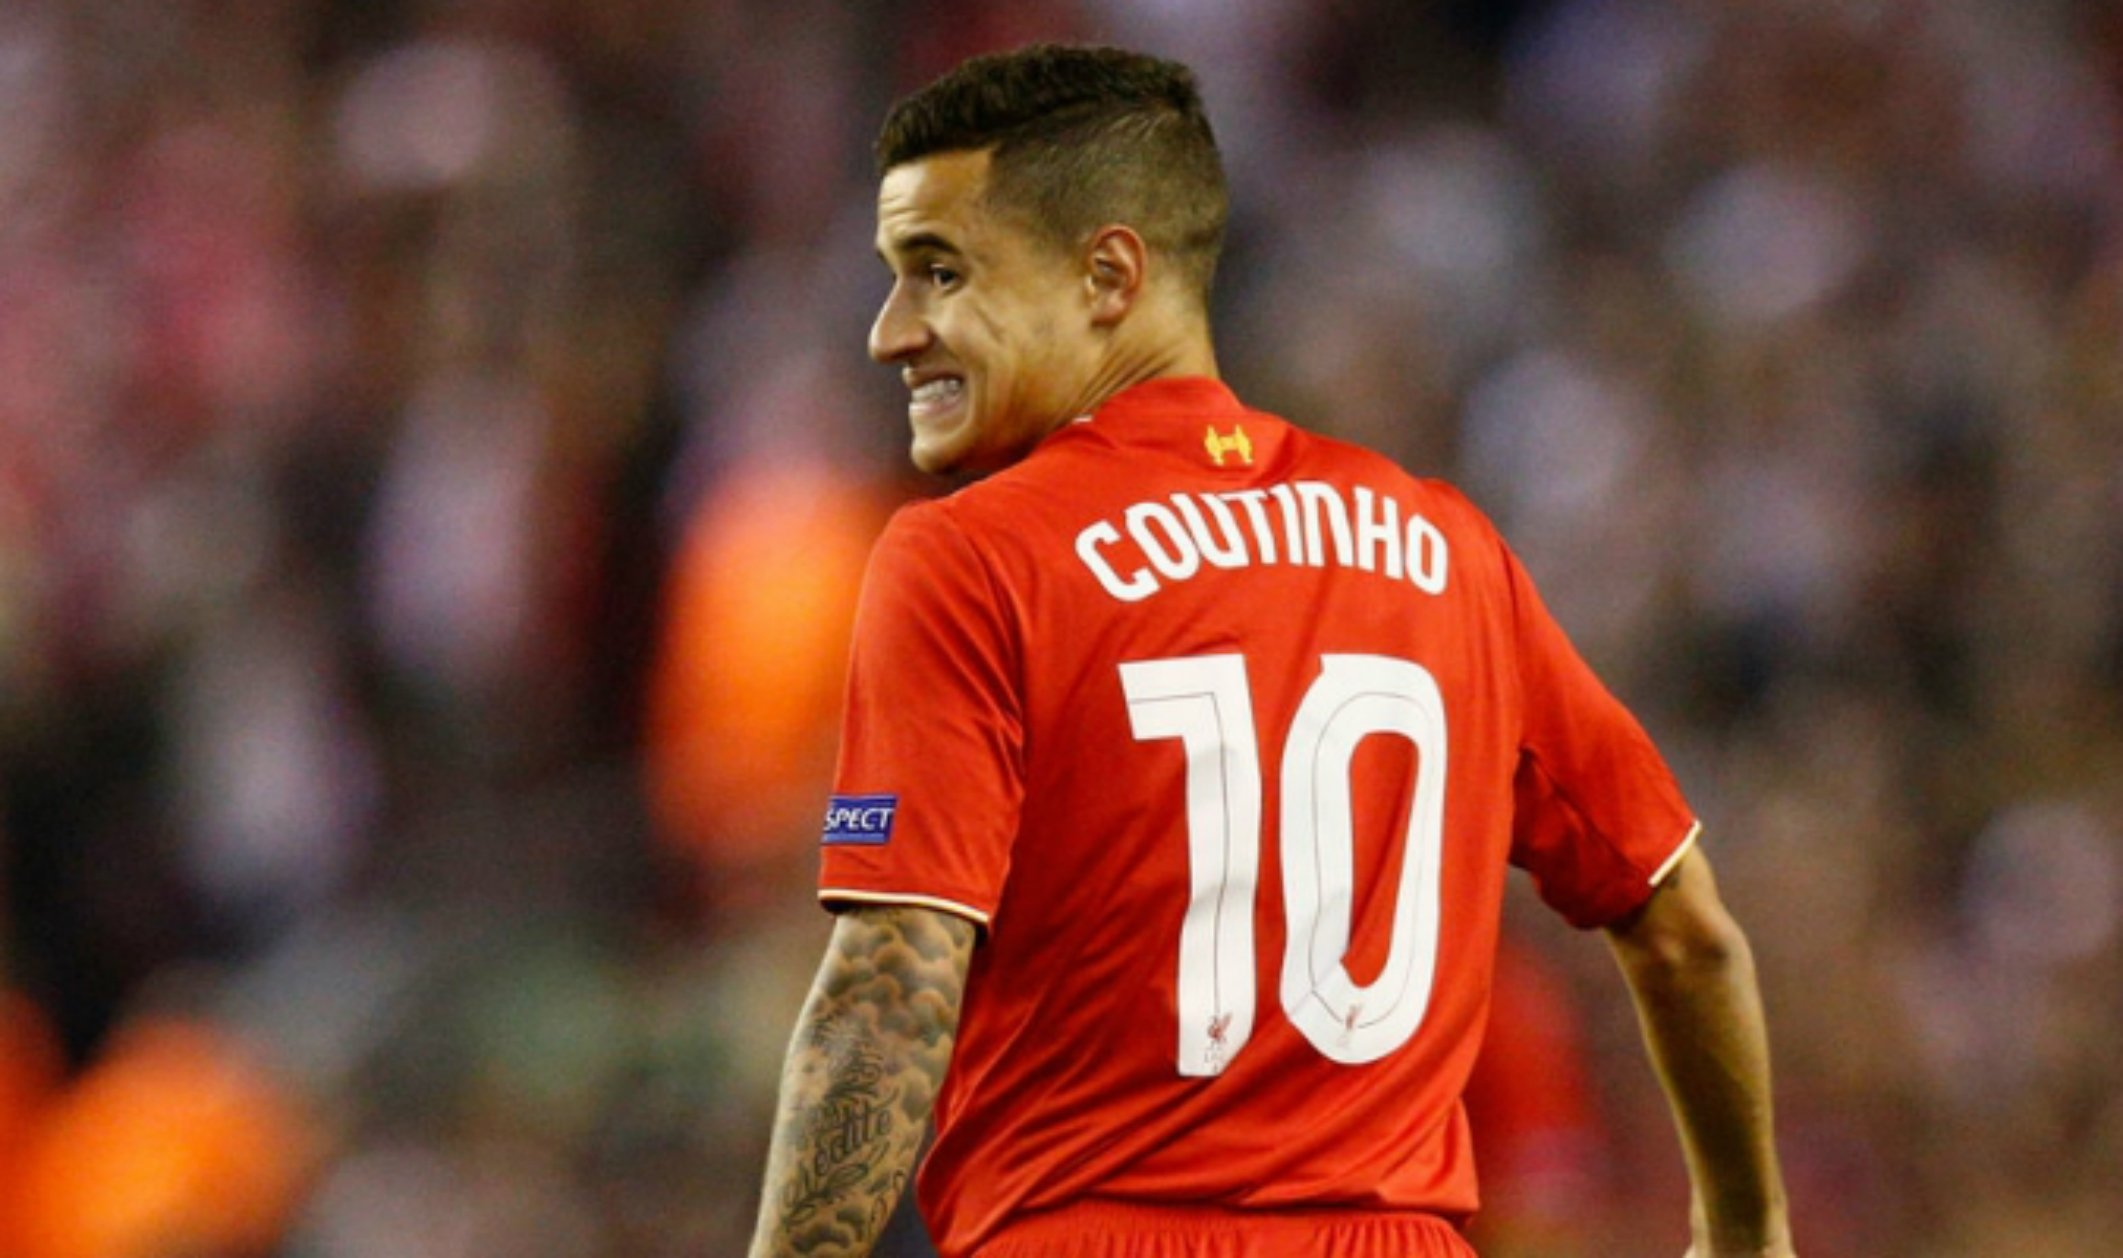 Philippe Coutinho 10 Liverpool   EFE